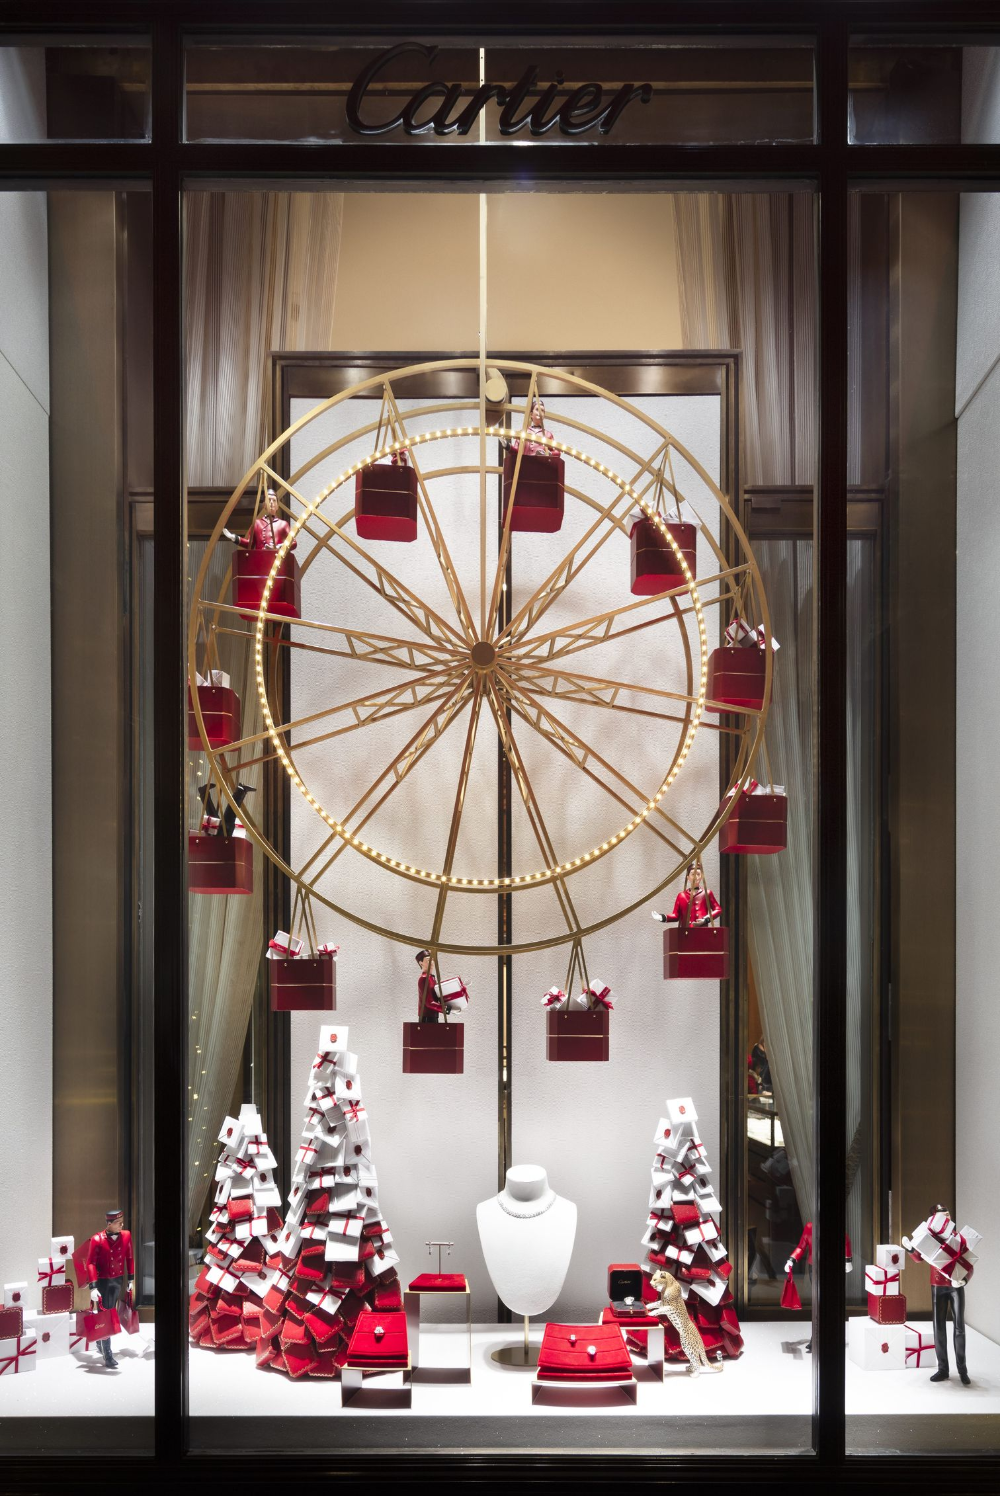 When Does Bloomingdales Ny Decorated For Christmas 2020 See All of NYC's Most Iconic Window Displays From the Comfort of